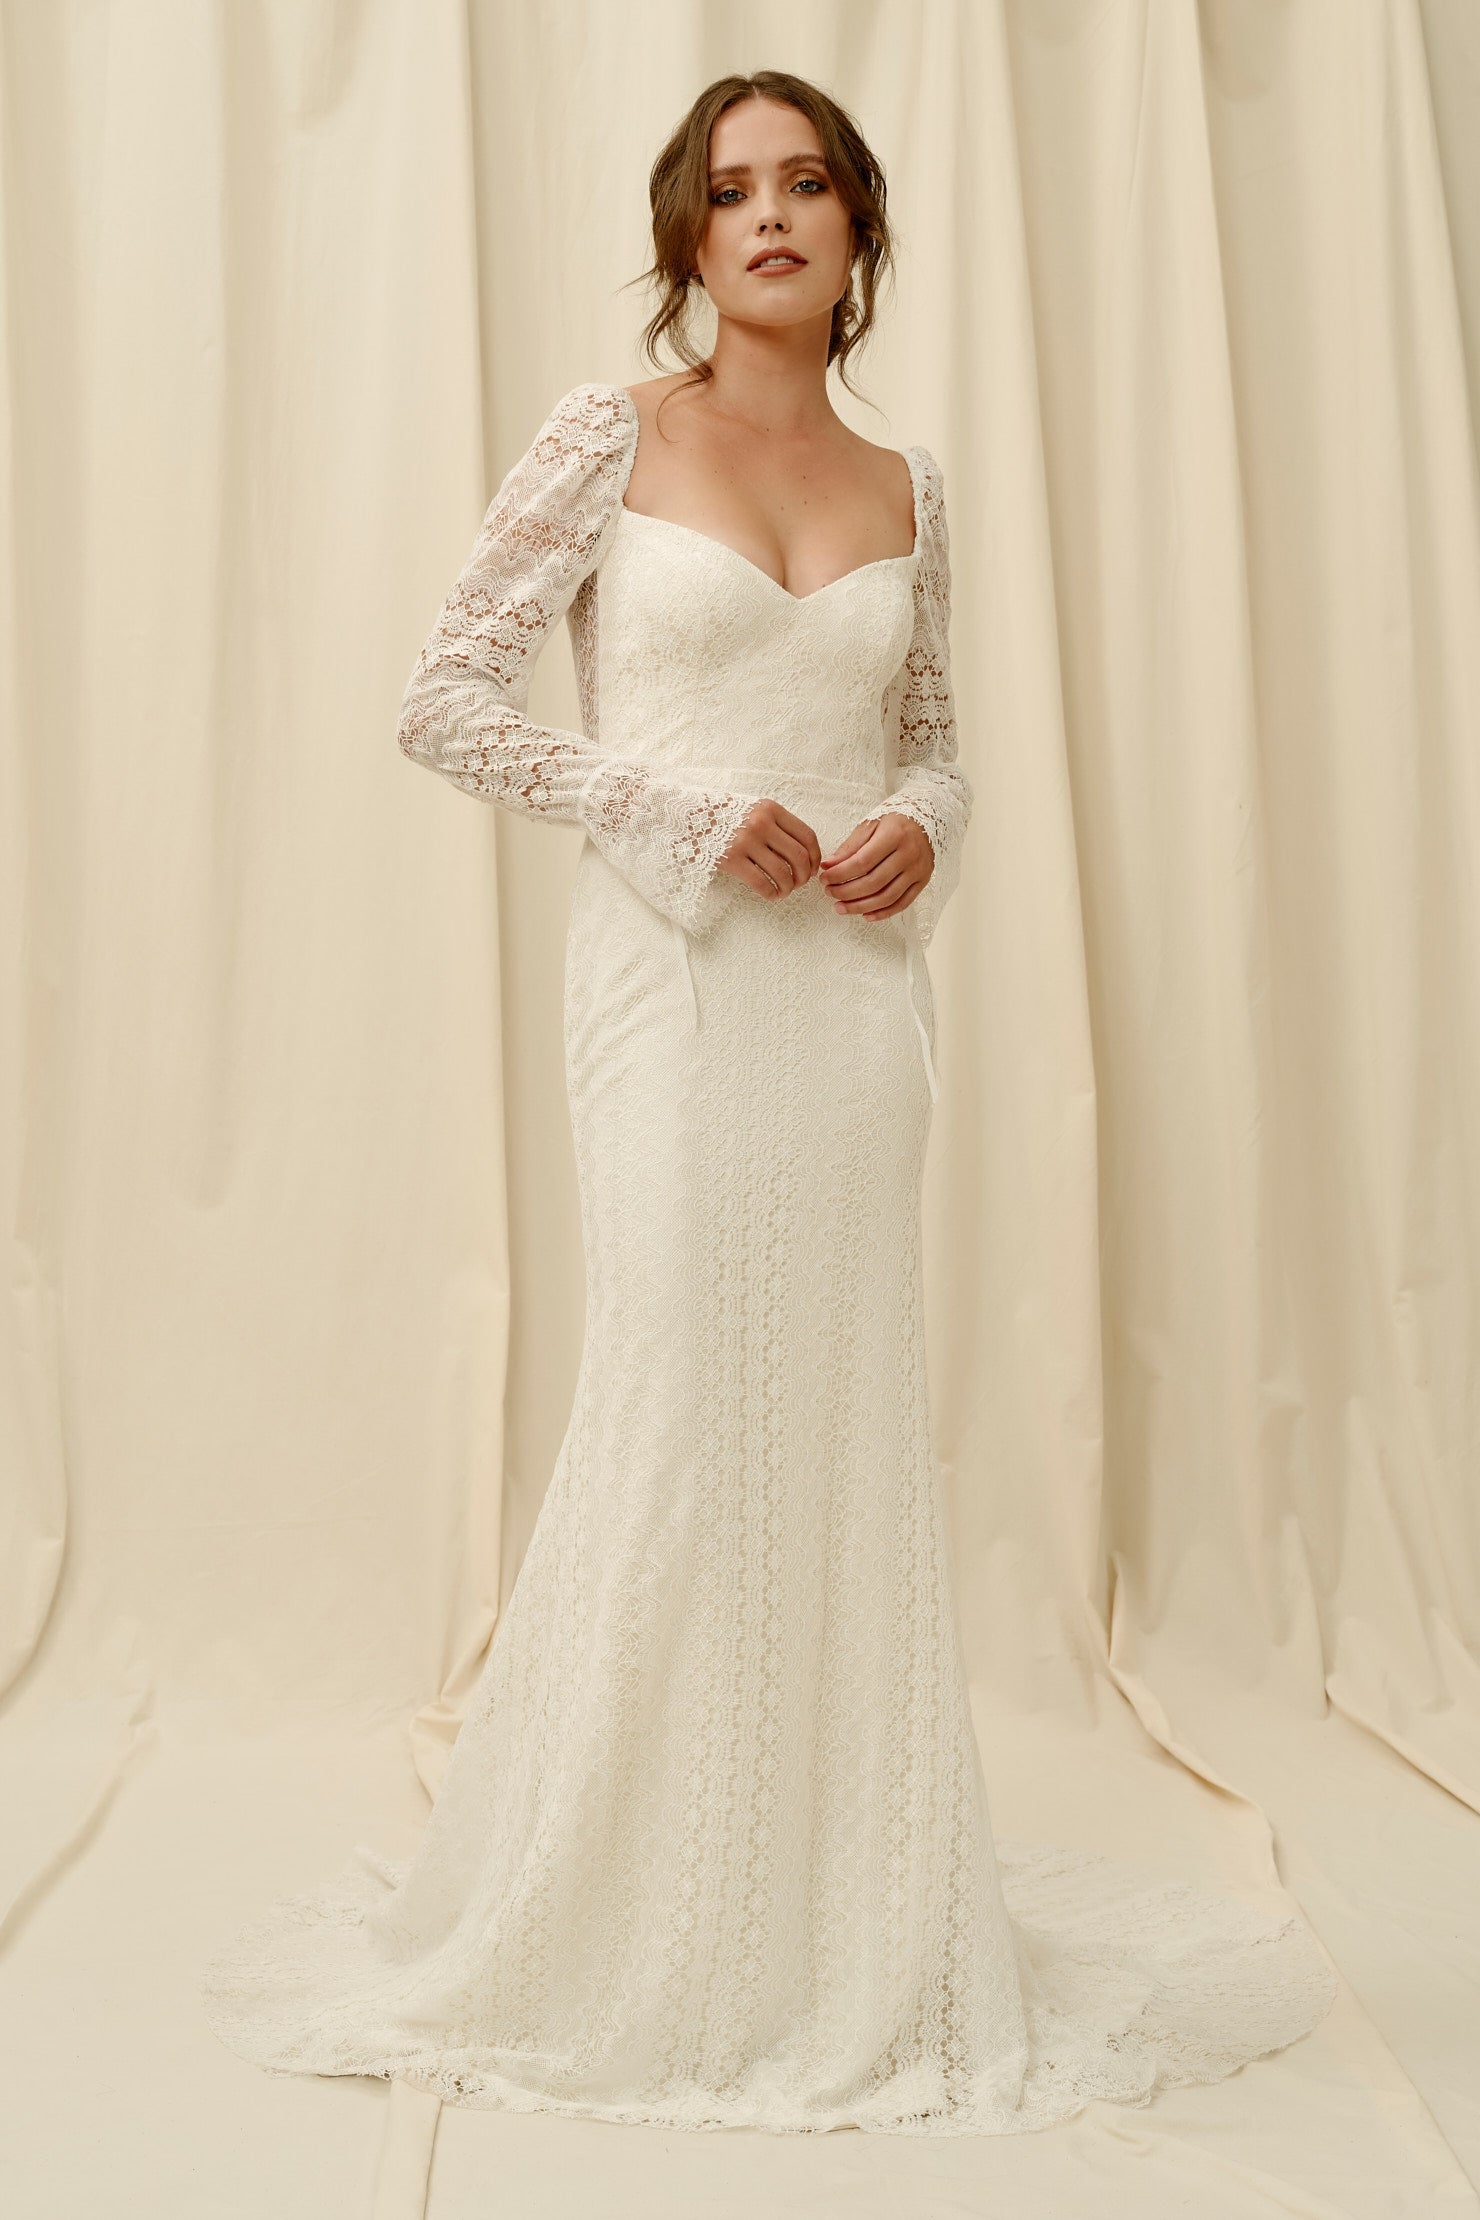 Backless lace wedding dress with sleeves